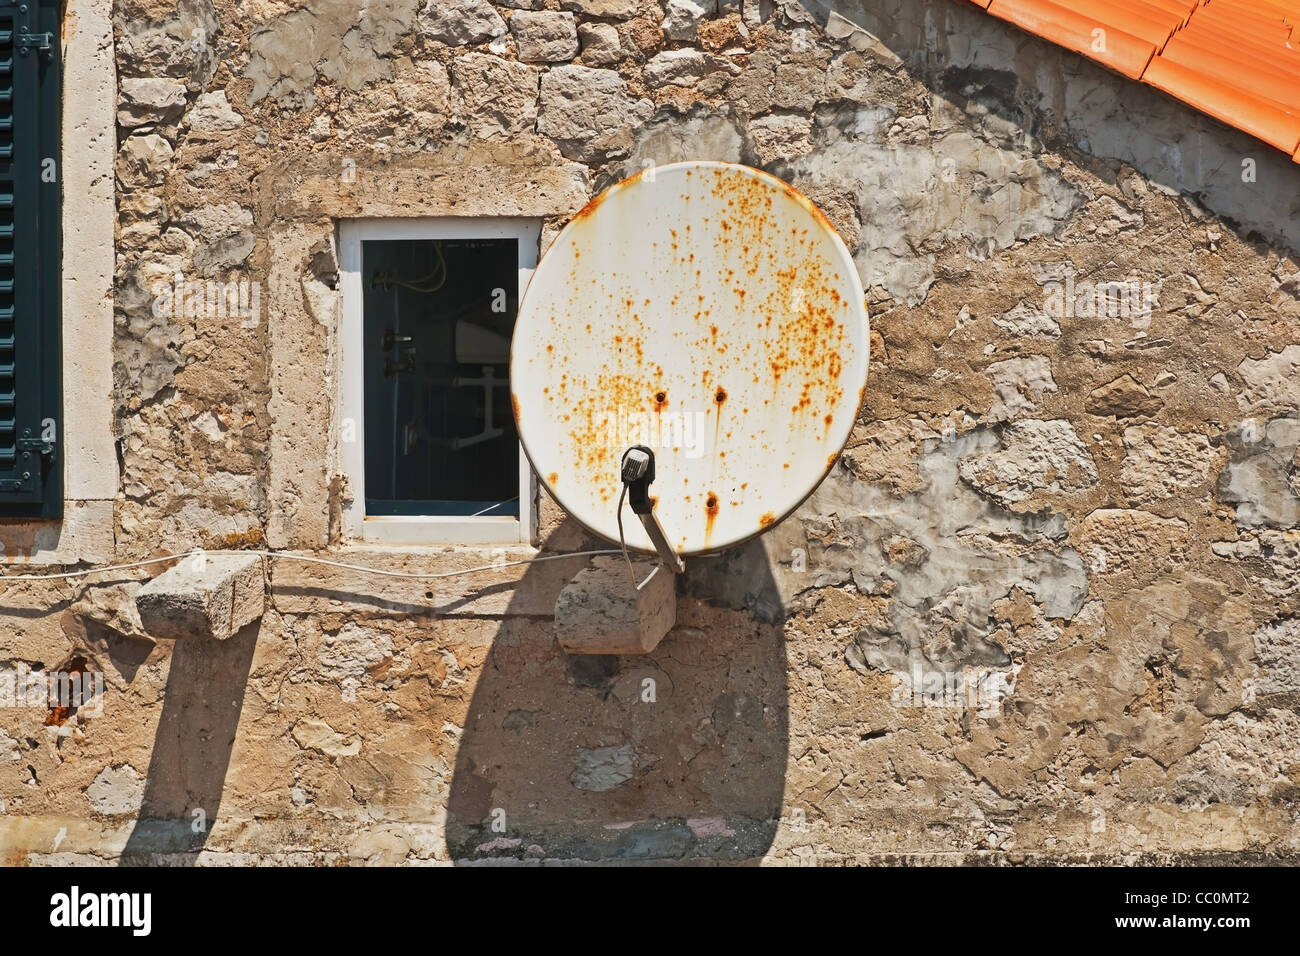 Satellite dish on a house in the Old Town of Dubrovnik, Dalmatia, Croatia, Europe - Stock Image